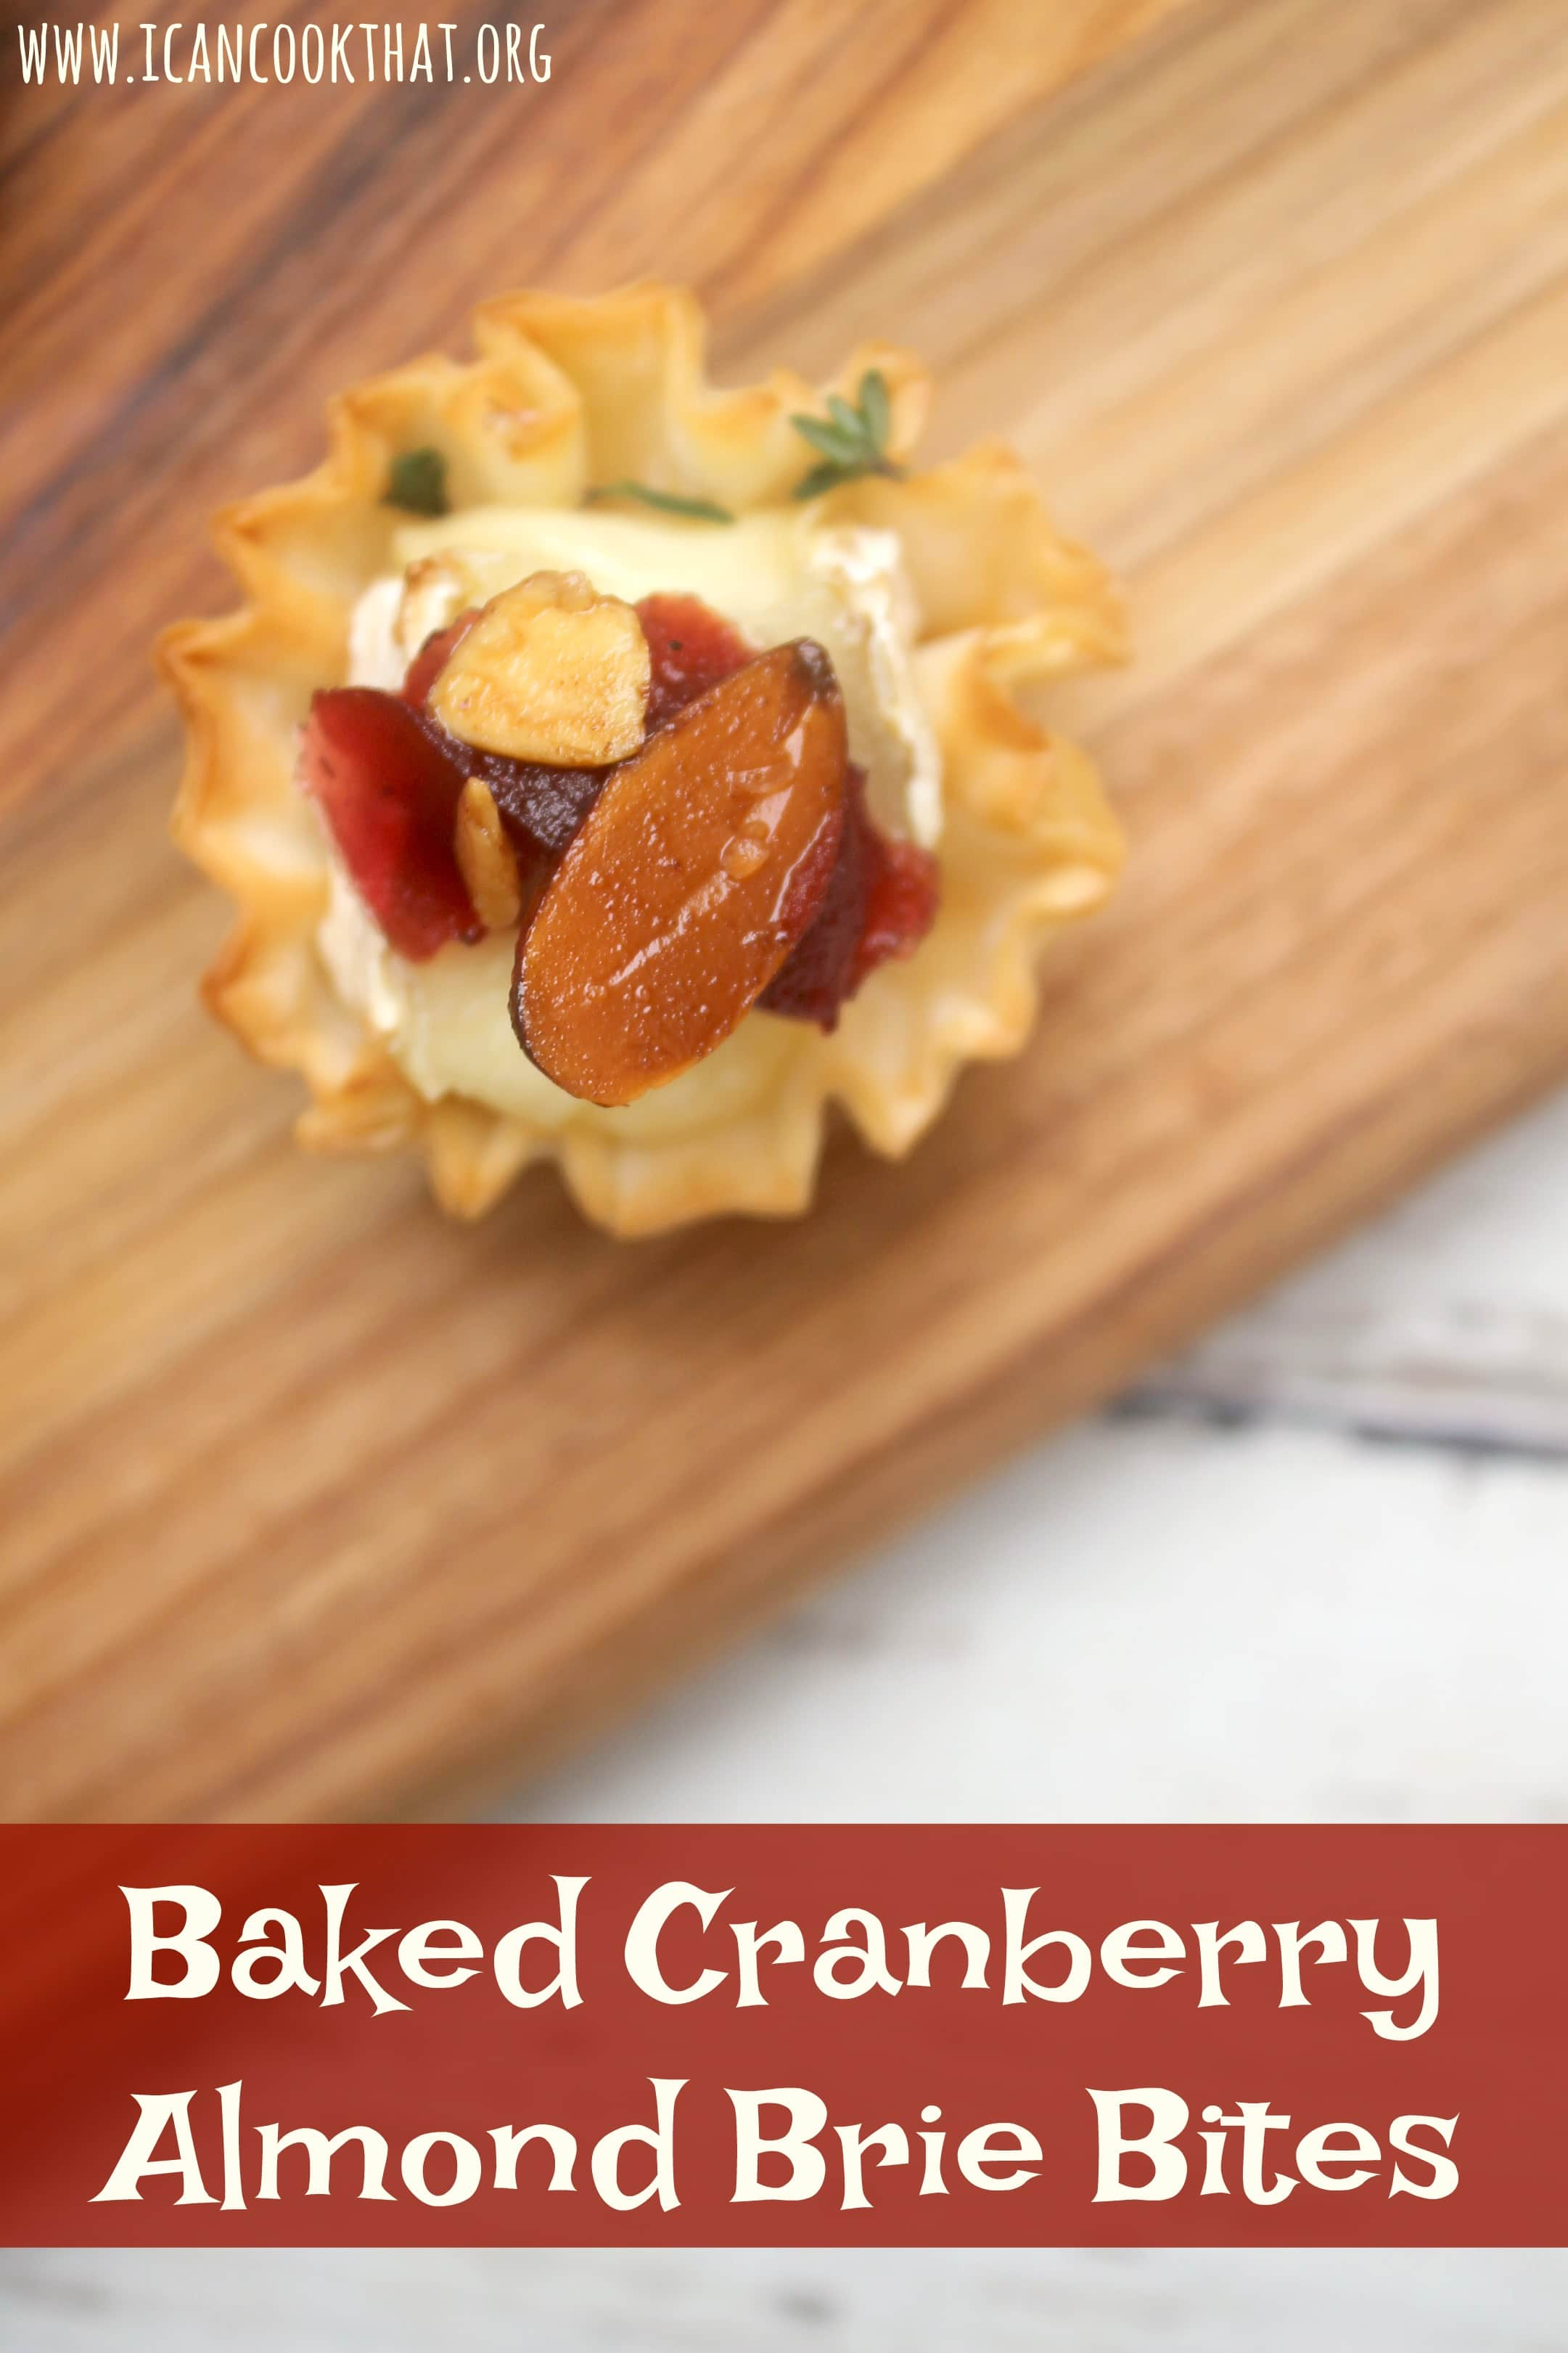 Baked Cranberry Almond Brie Bites